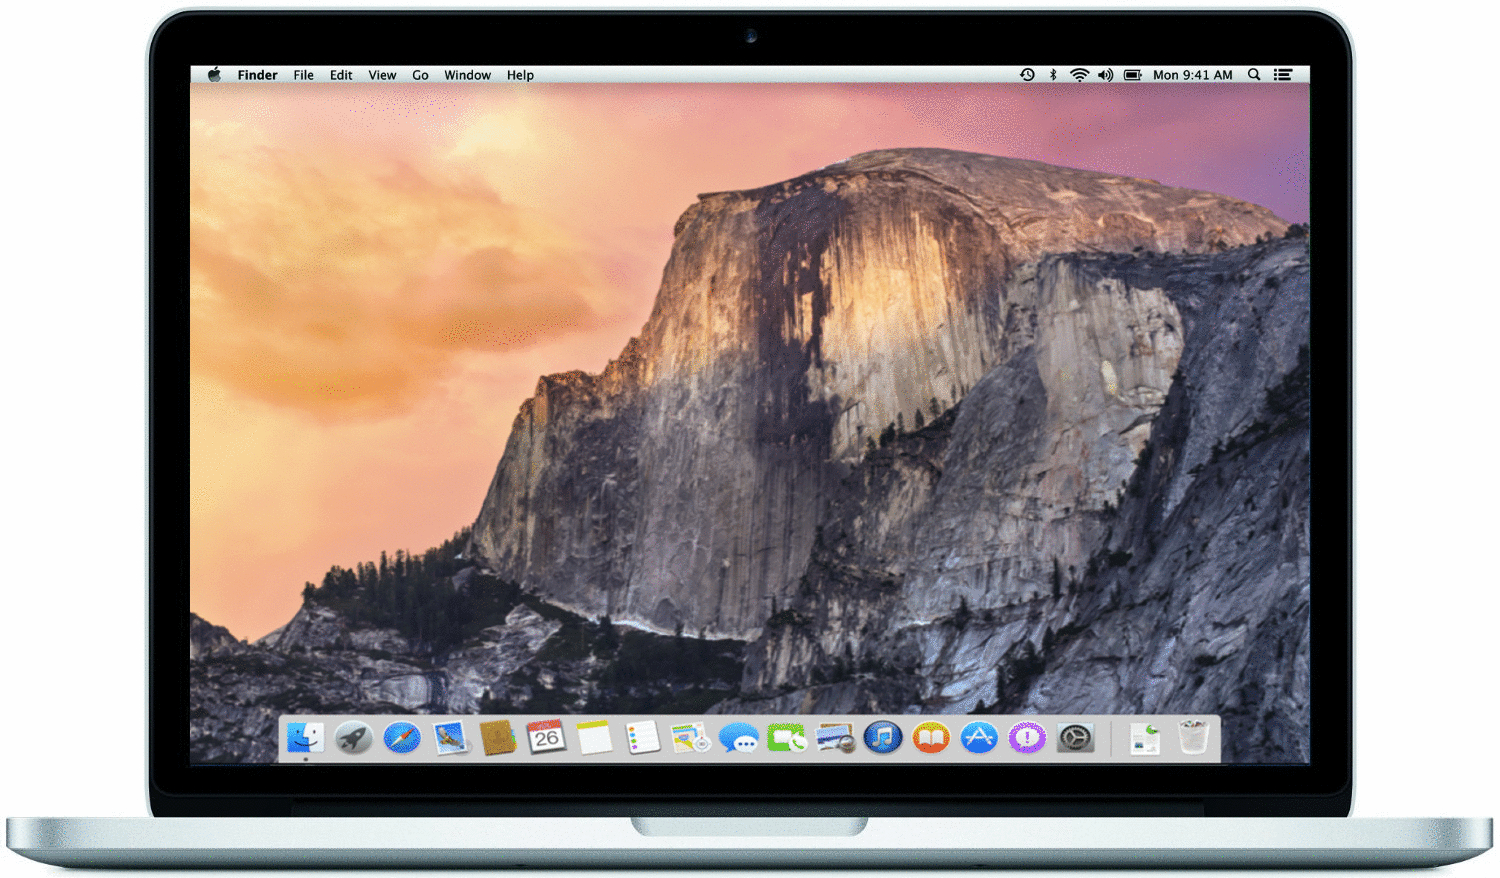 Apple MacBook Pro CTO 13.3 (Retina Display) 2.9 GHz Intel Core i5 16 GB RAM 256 GB PCIe SSD [Early 2015]